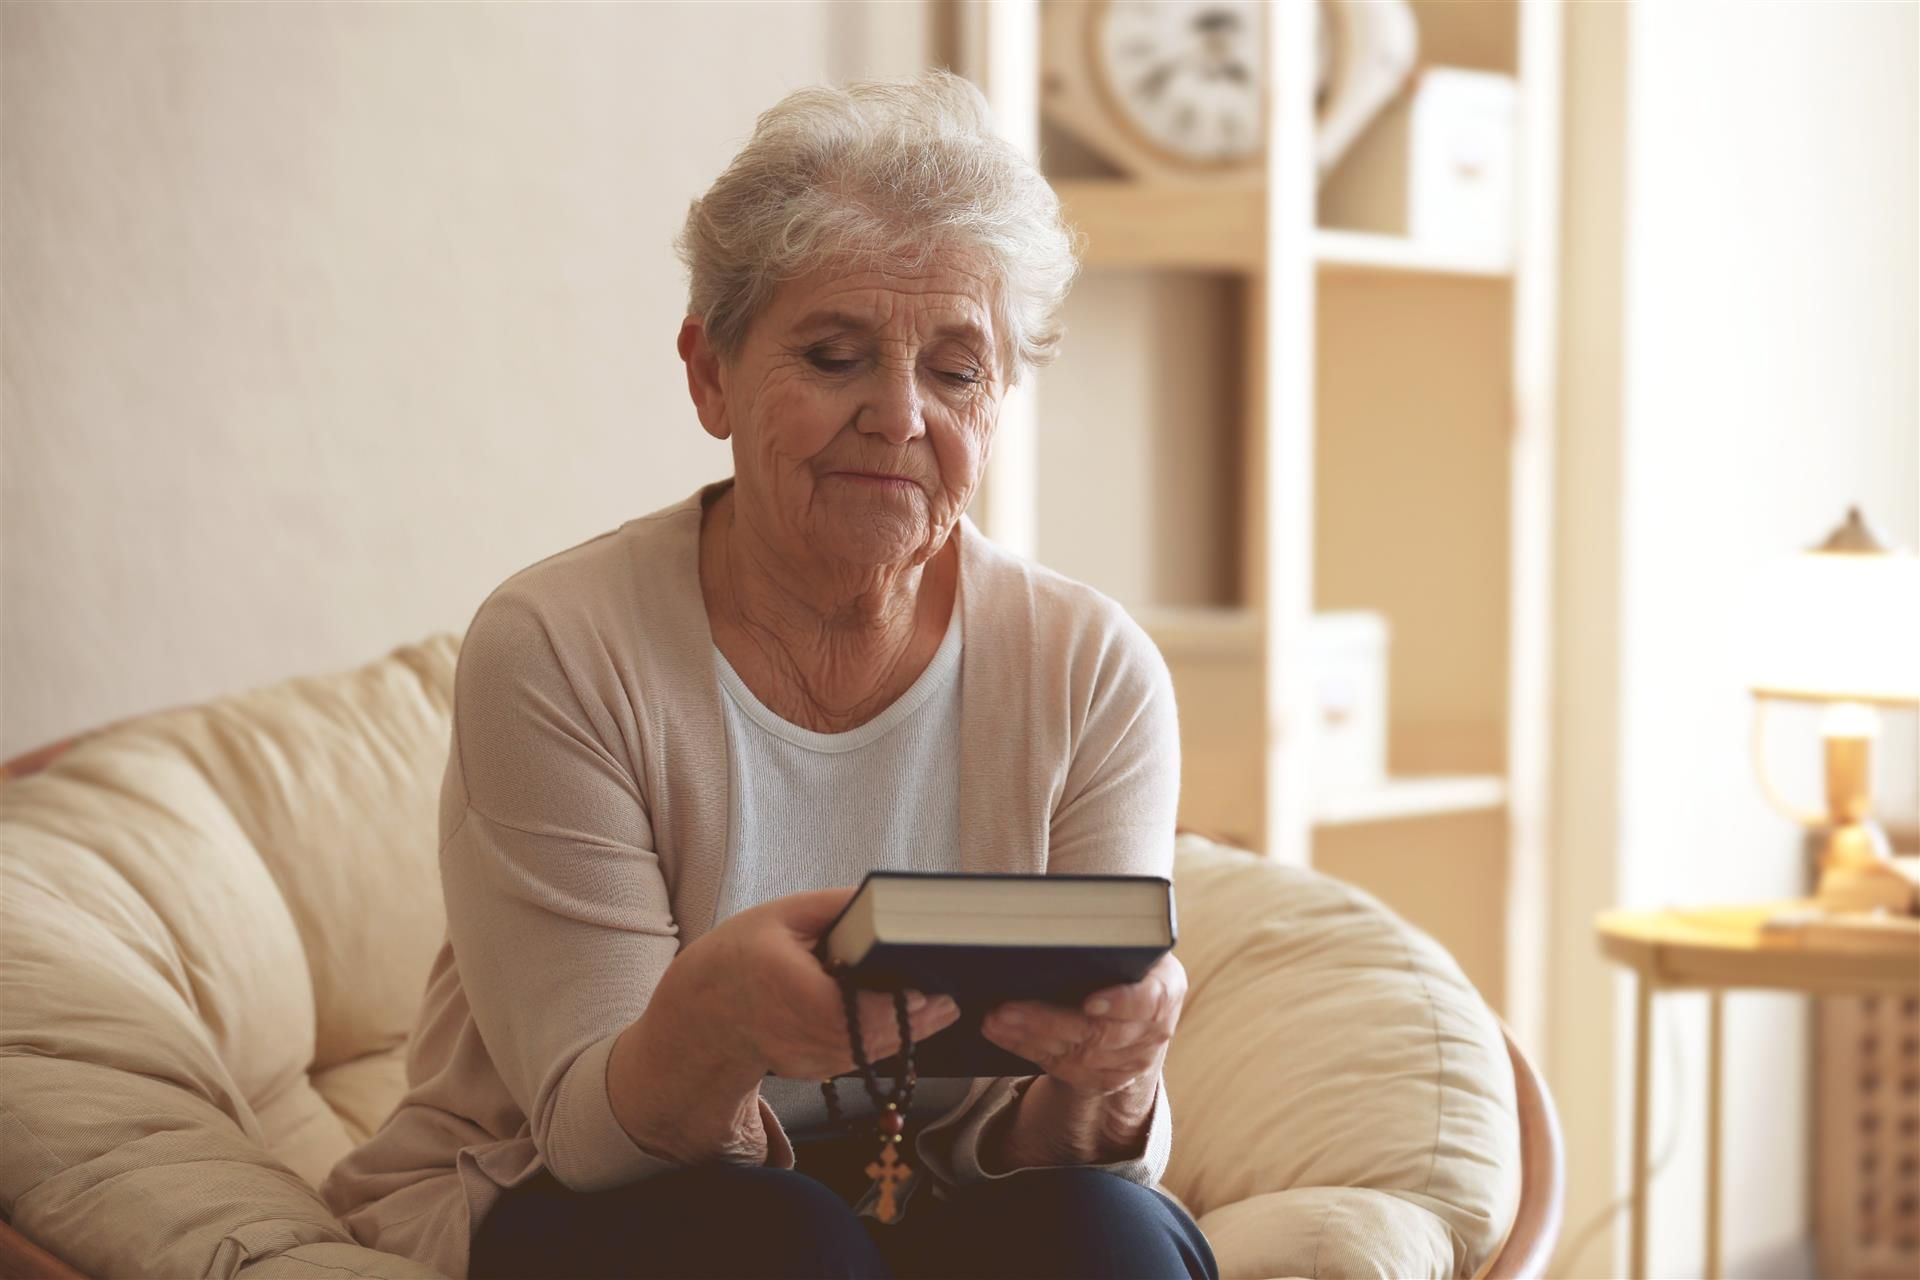 3 Bible Battle Stories that Have Relevance for Seniors Today